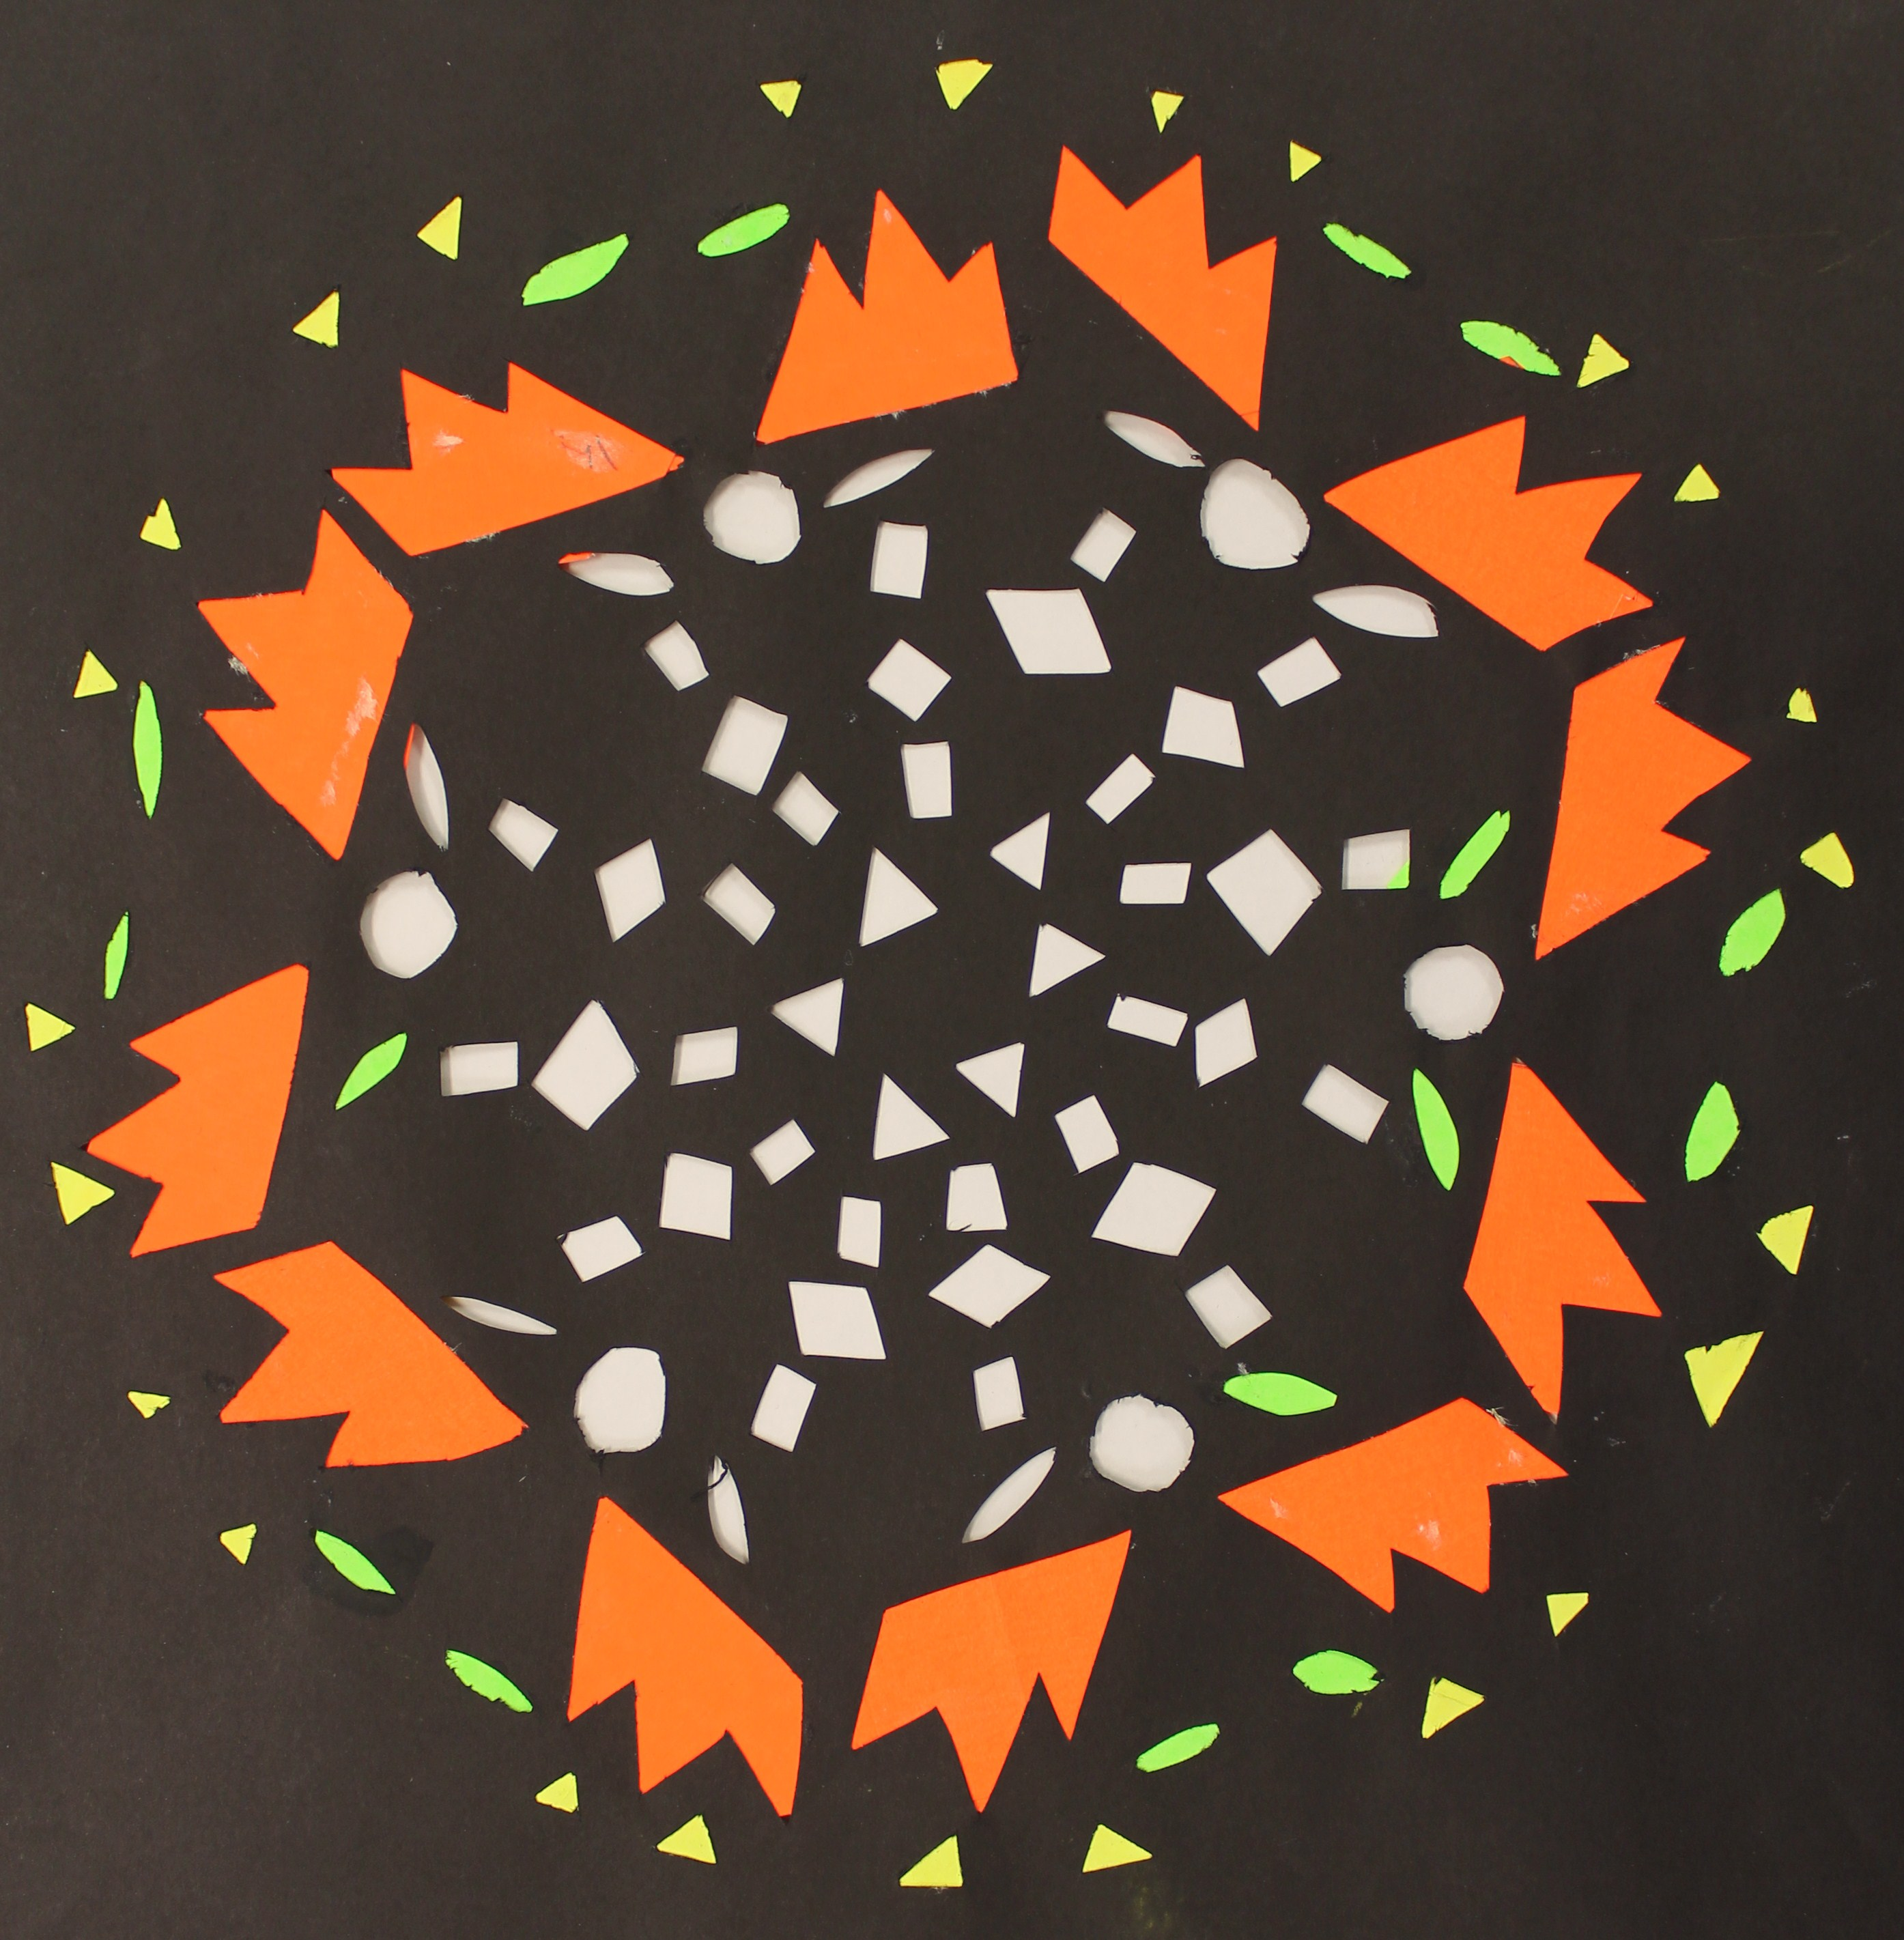 Radial Symmetry Paper Cutting 6th Grade Hamburg Middle